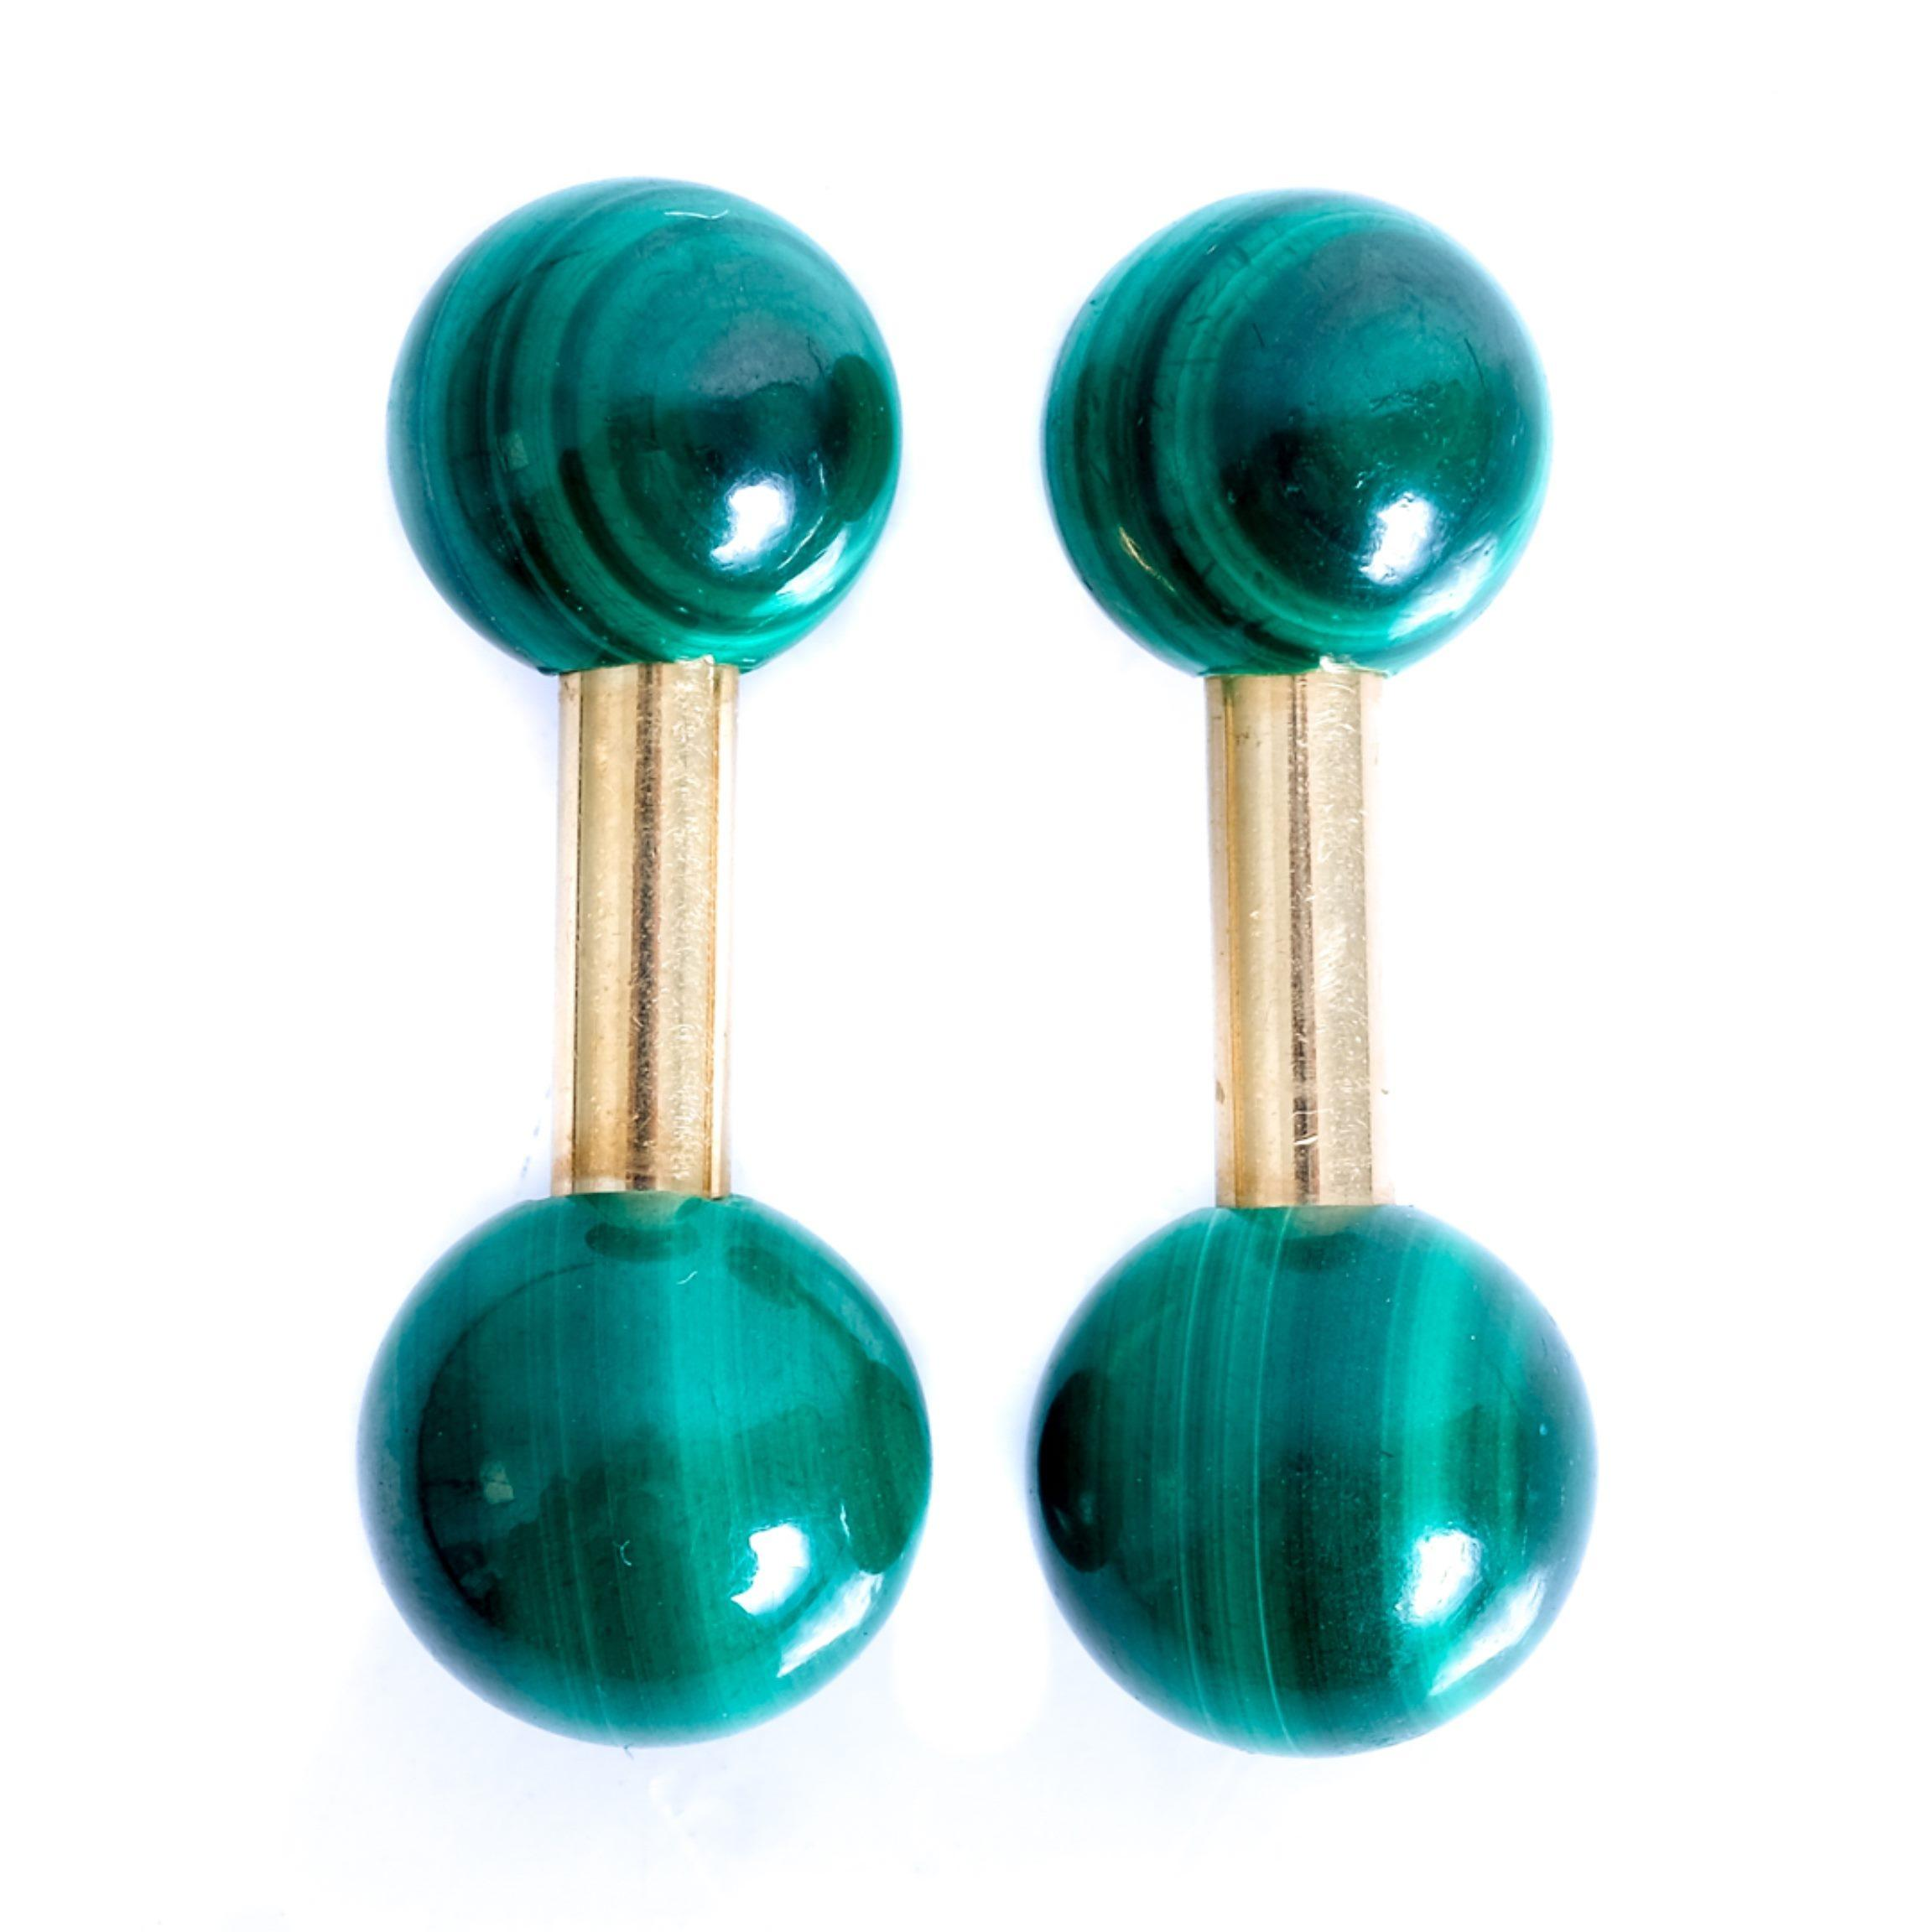 Tiffany & Co 14k YG Malachite Barbell Cufflinks